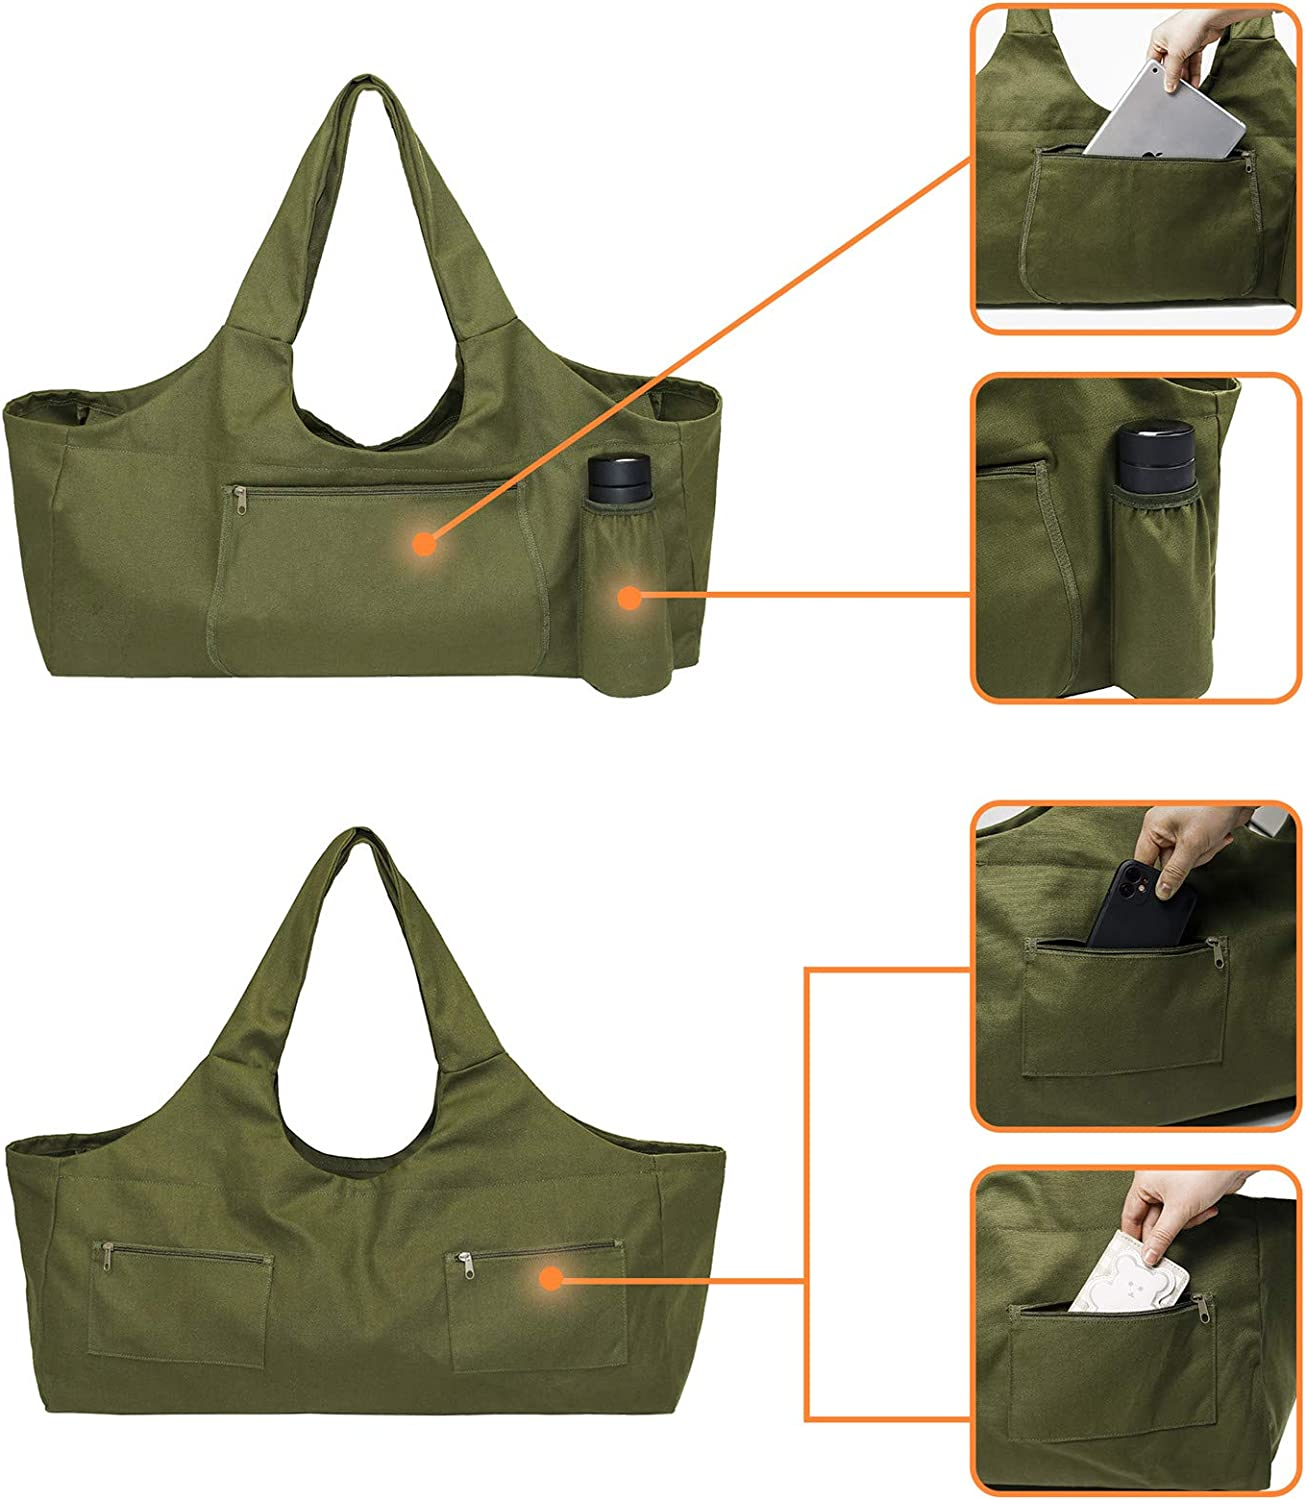 MillyShine Yoga Mat Bag Carrier with Pockets Yoga Bag Large Strap Carrier Gym Bags for Women Yoga Accessories Bolster